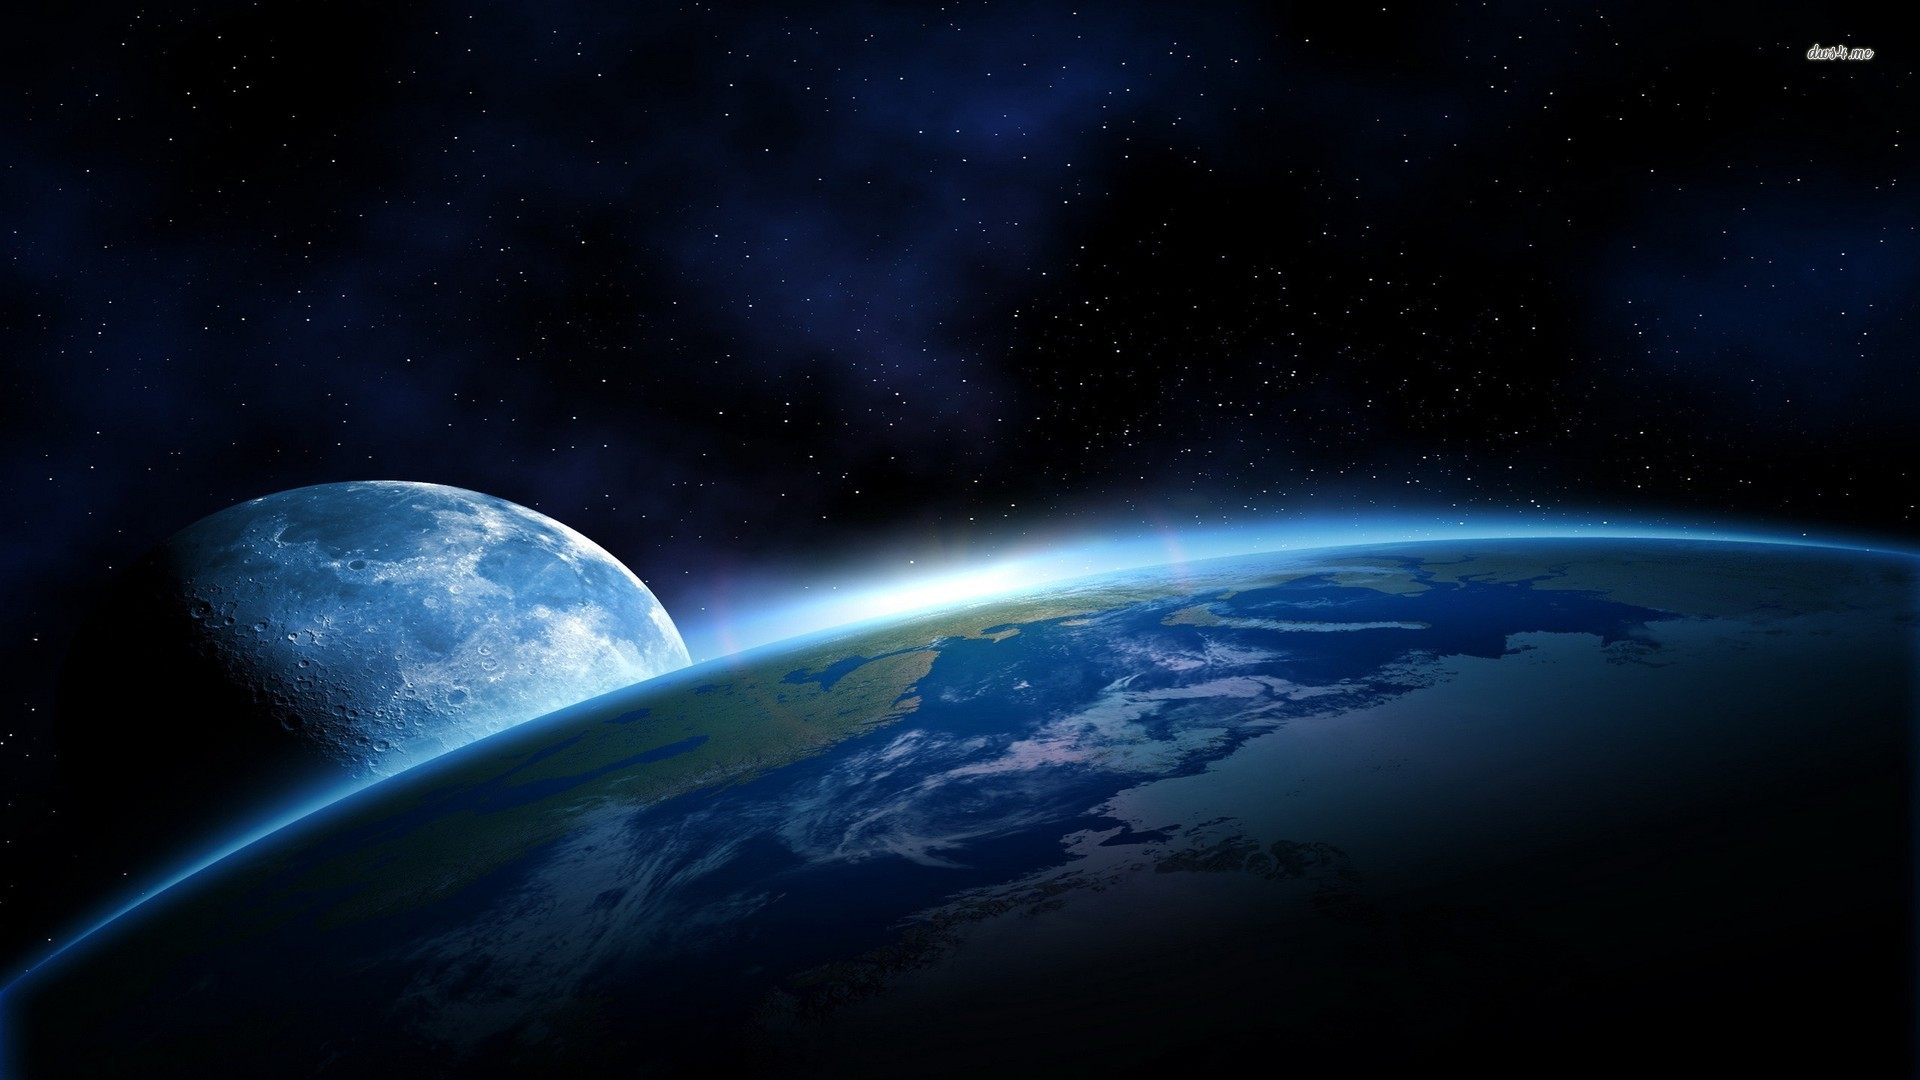 Planet Earth From Space Wallpaper: Earth From Moon Wallpaper (62+ Images